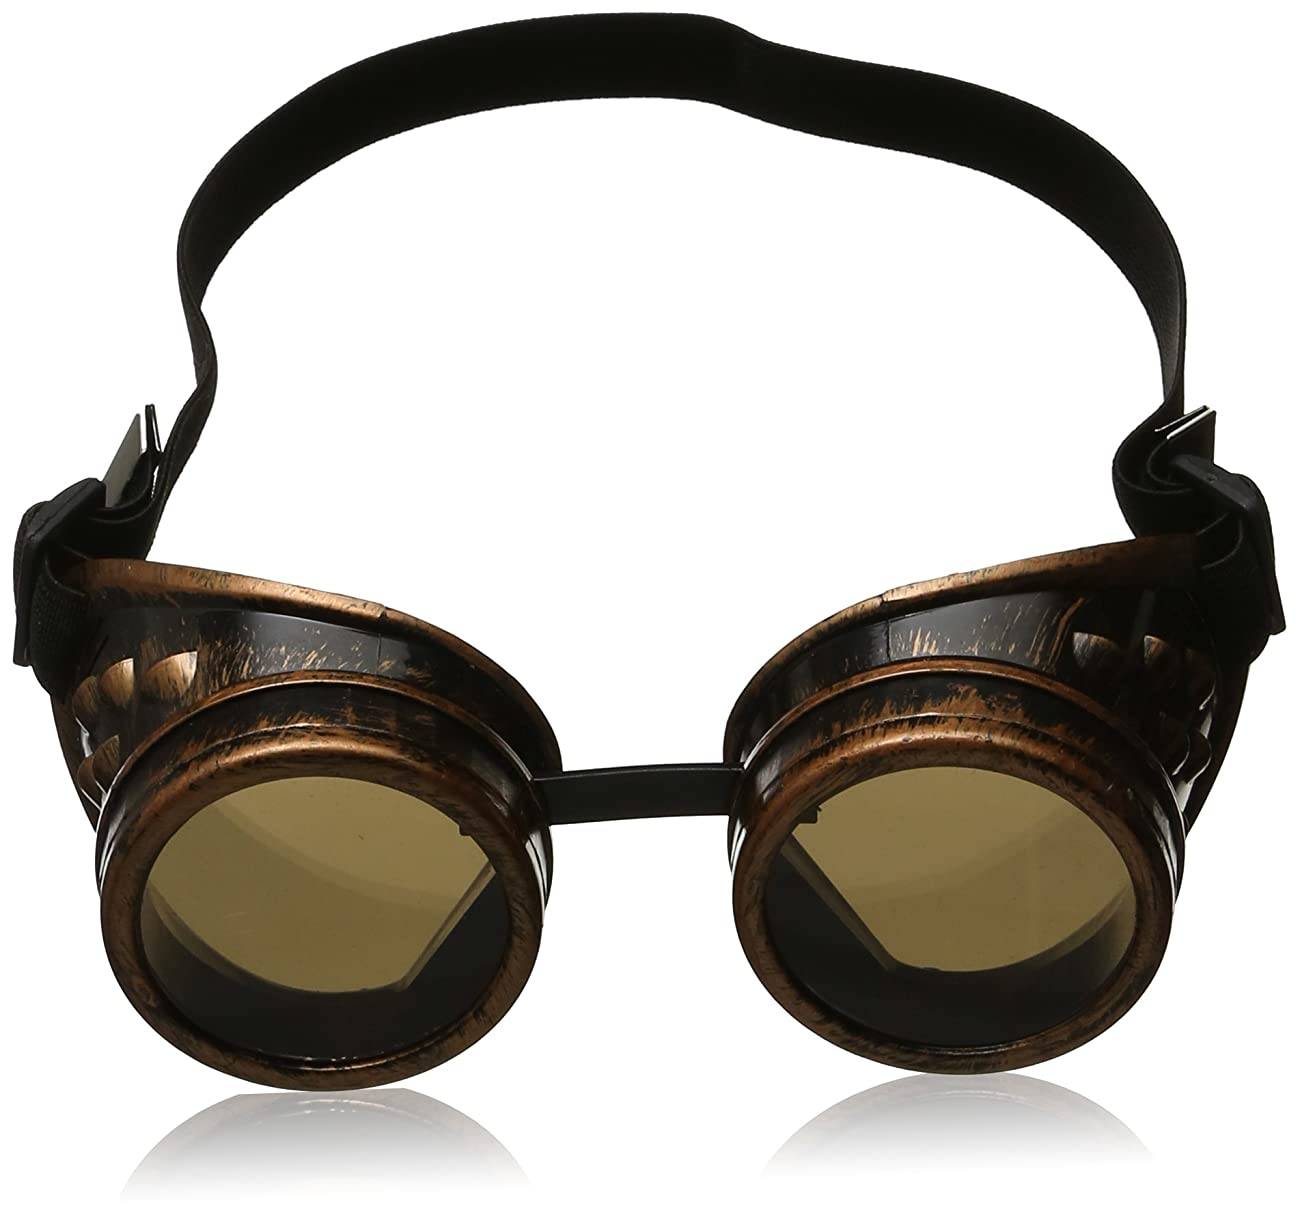 Leegoal(TM) Vintage Steampunk Goggles Glasses Welding Cyber Punk Gothic 3